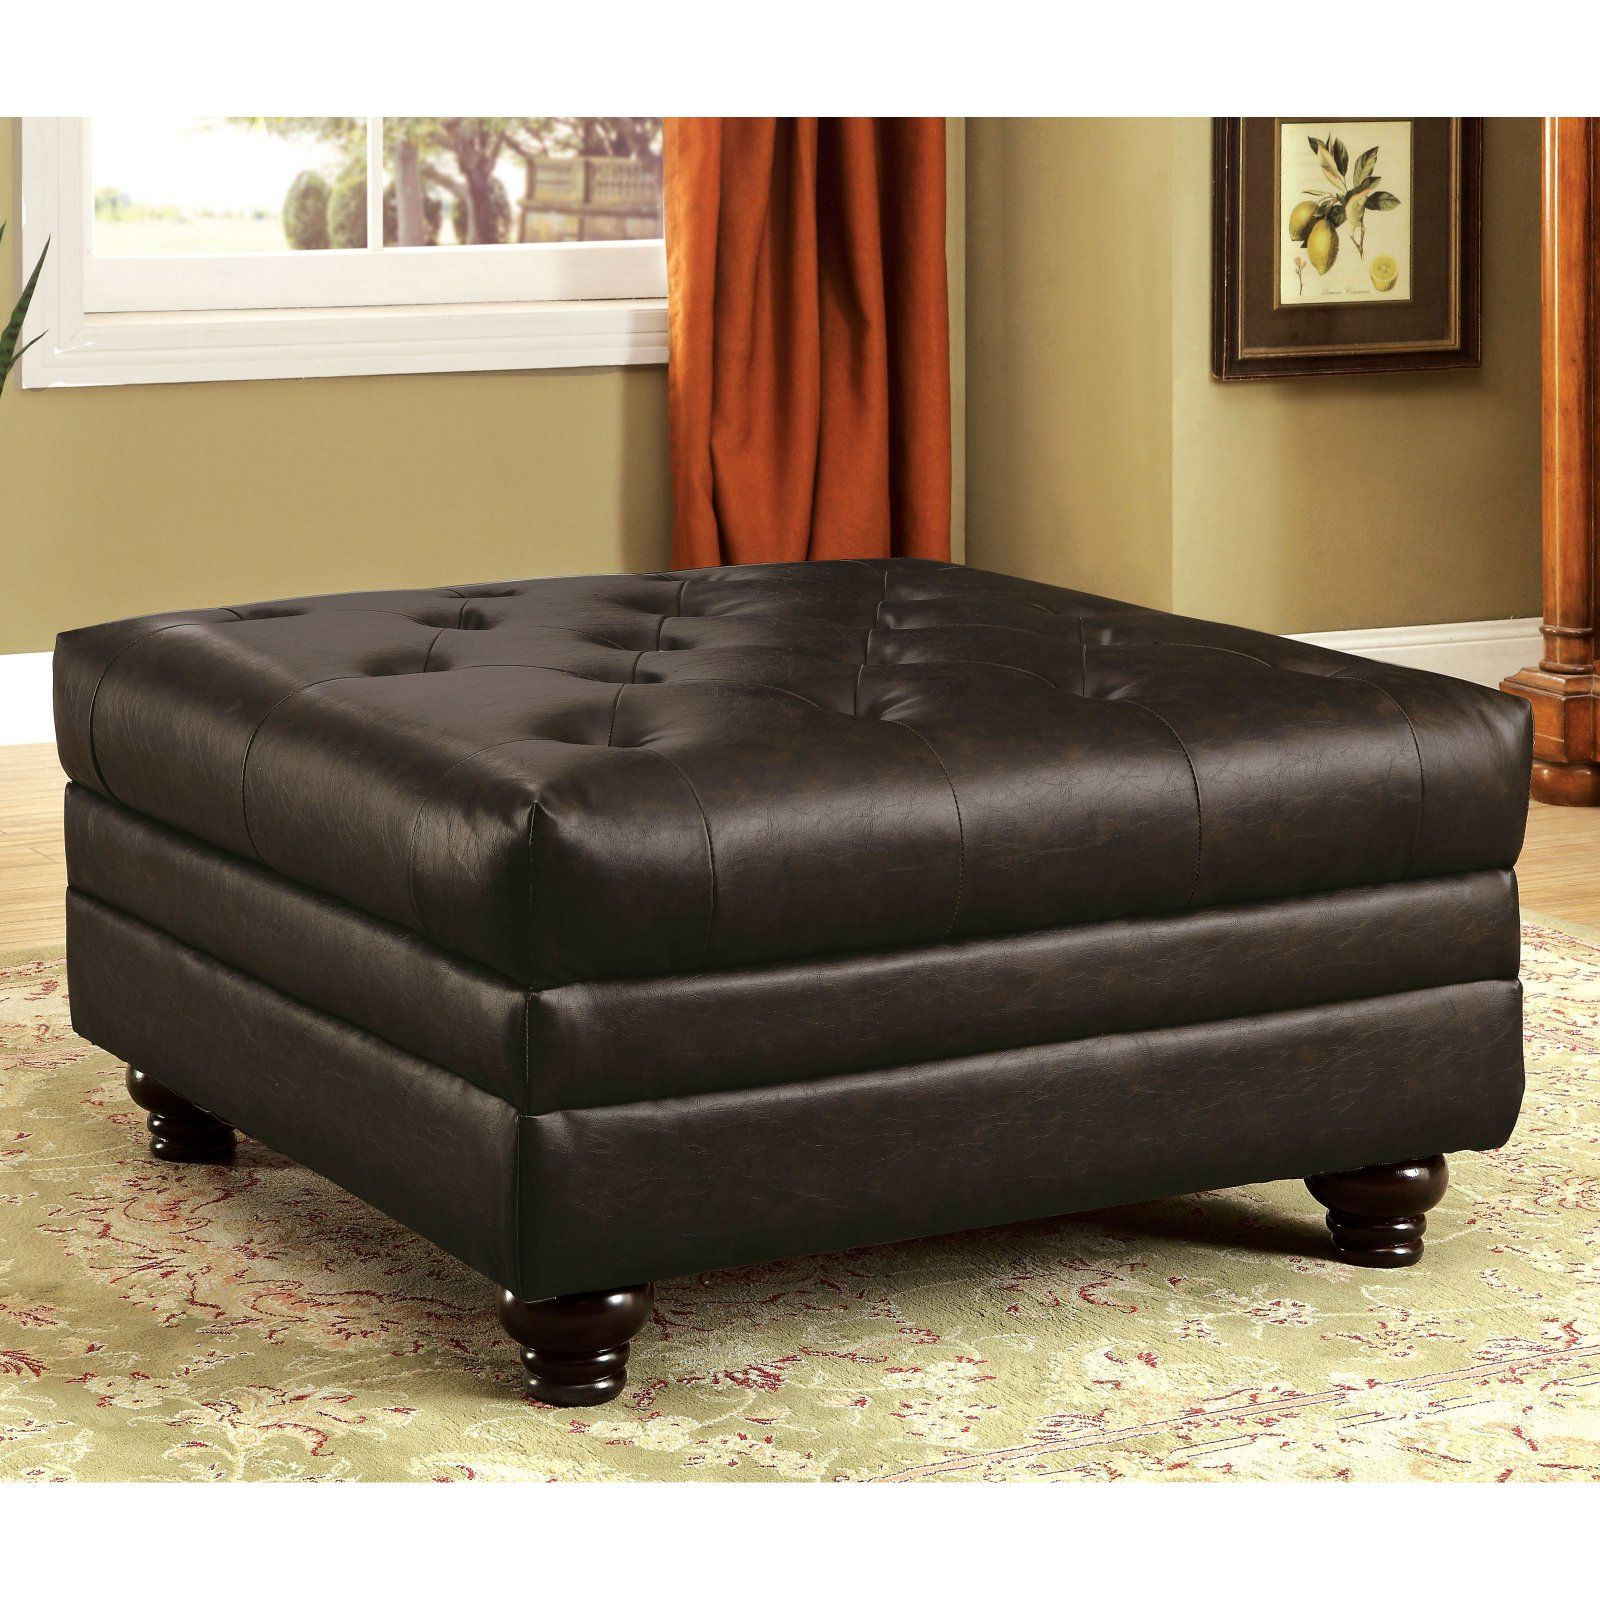 Remarkable Furniture Of America Starken Faux Leather Coffee Table Machost Co Dining Chair Design Ideas Machostcouk